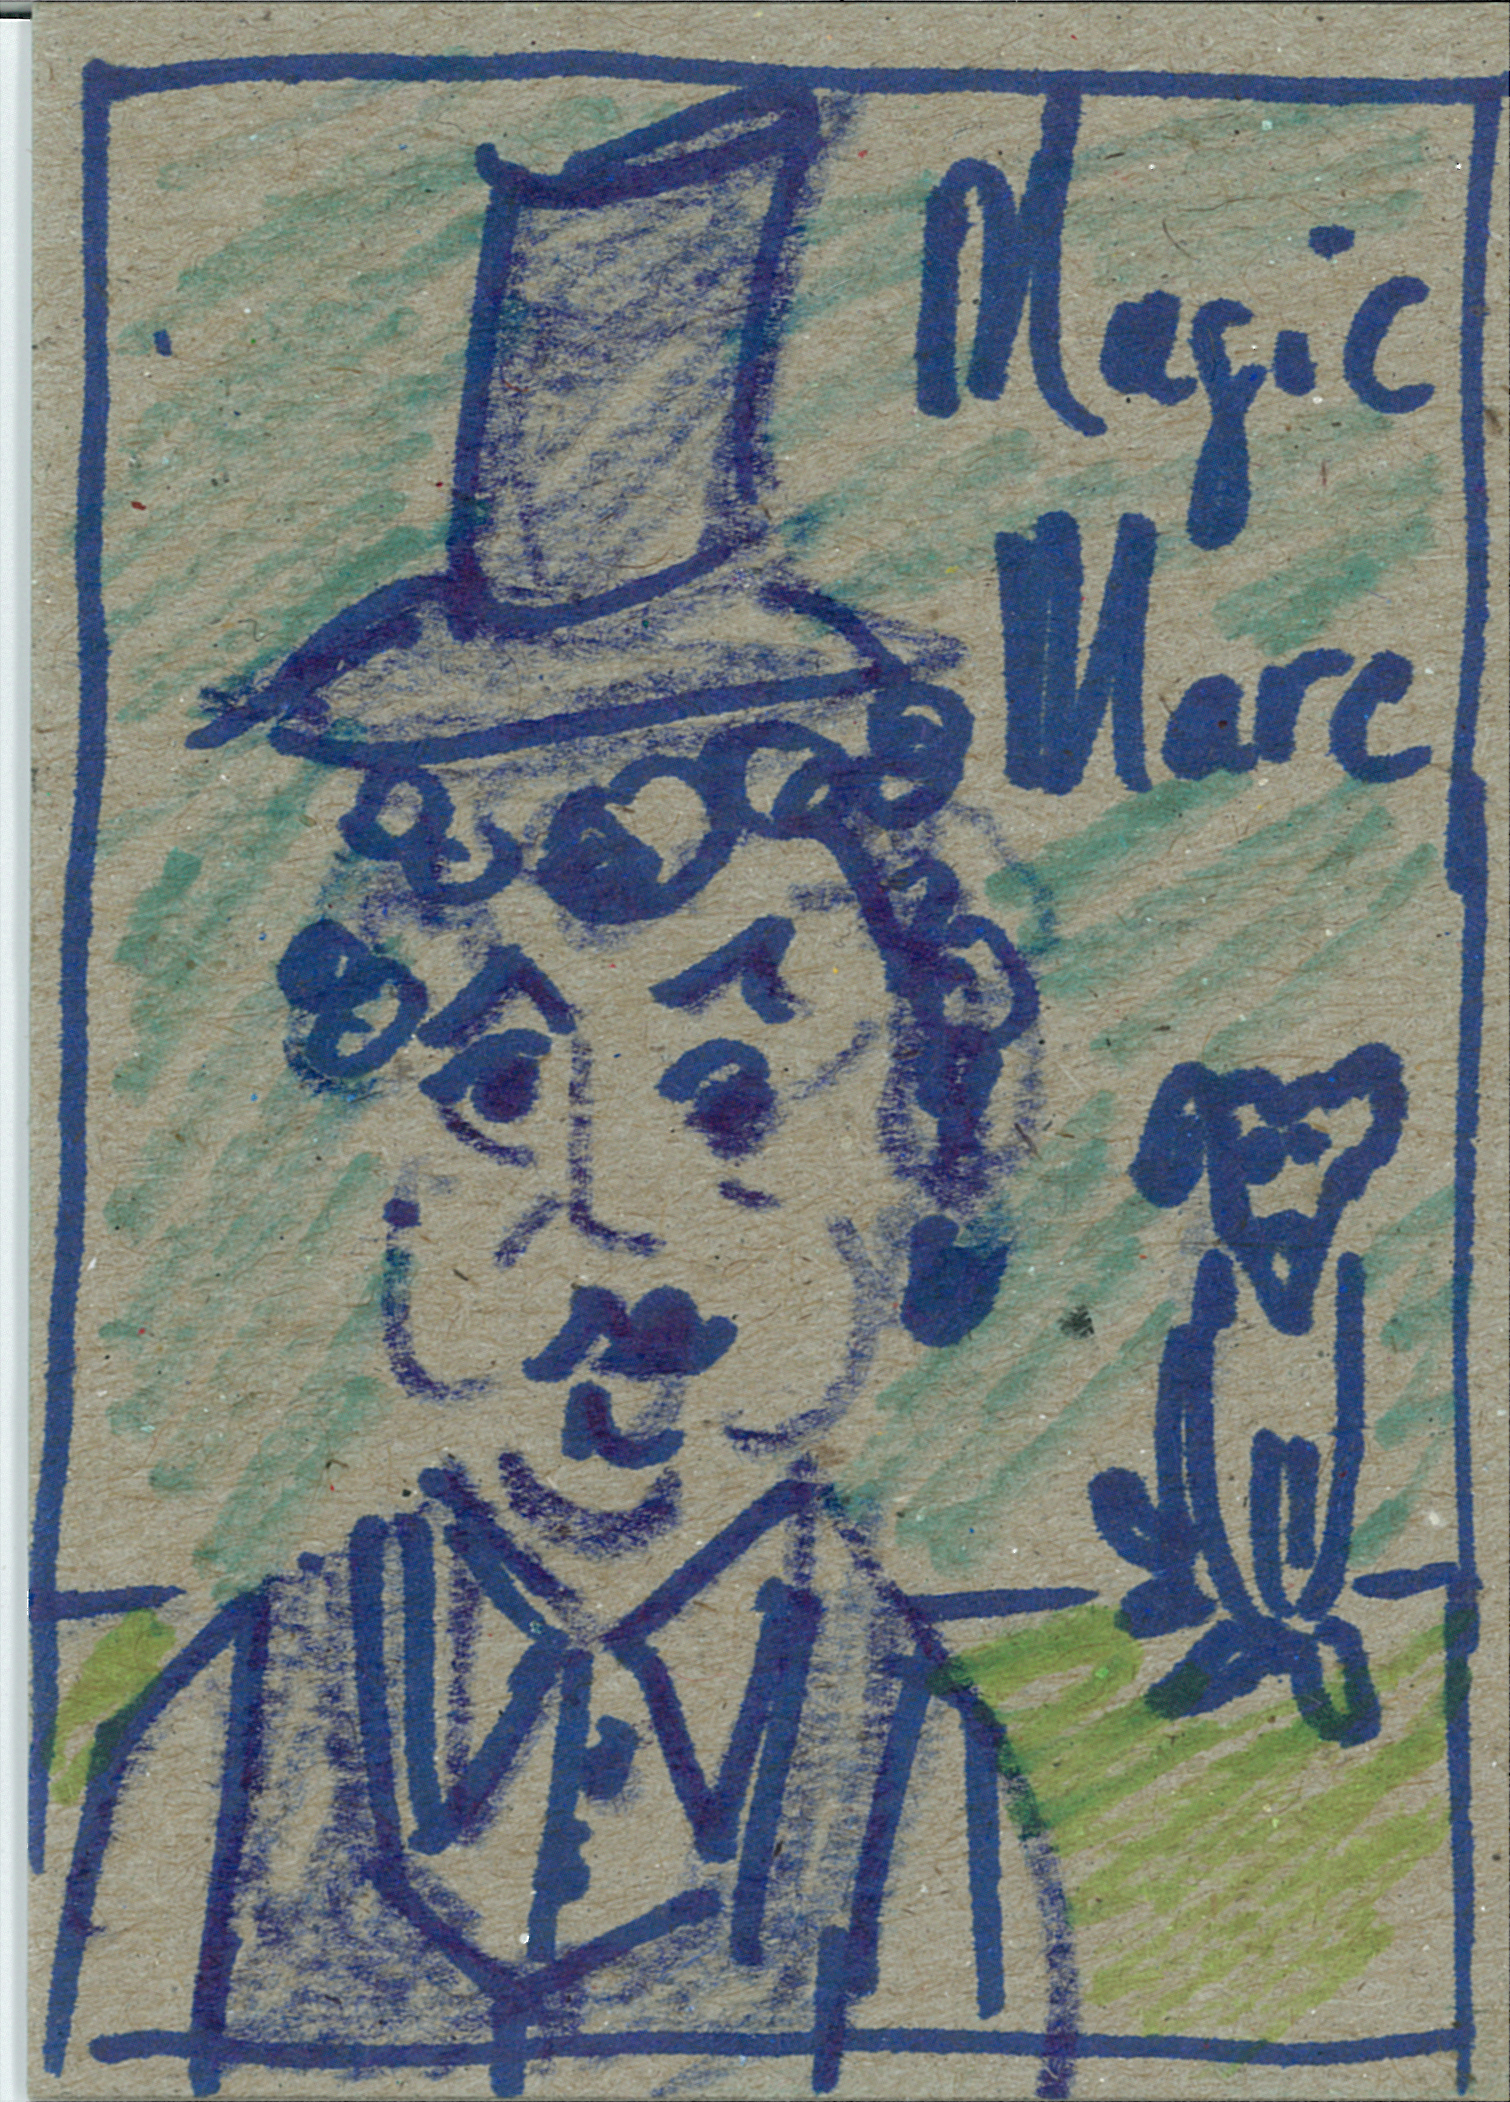 Magic Marc / February 18th, 2014 / 3 x 4 Marker Drawing on Cardboard by Gretchen Seichrist